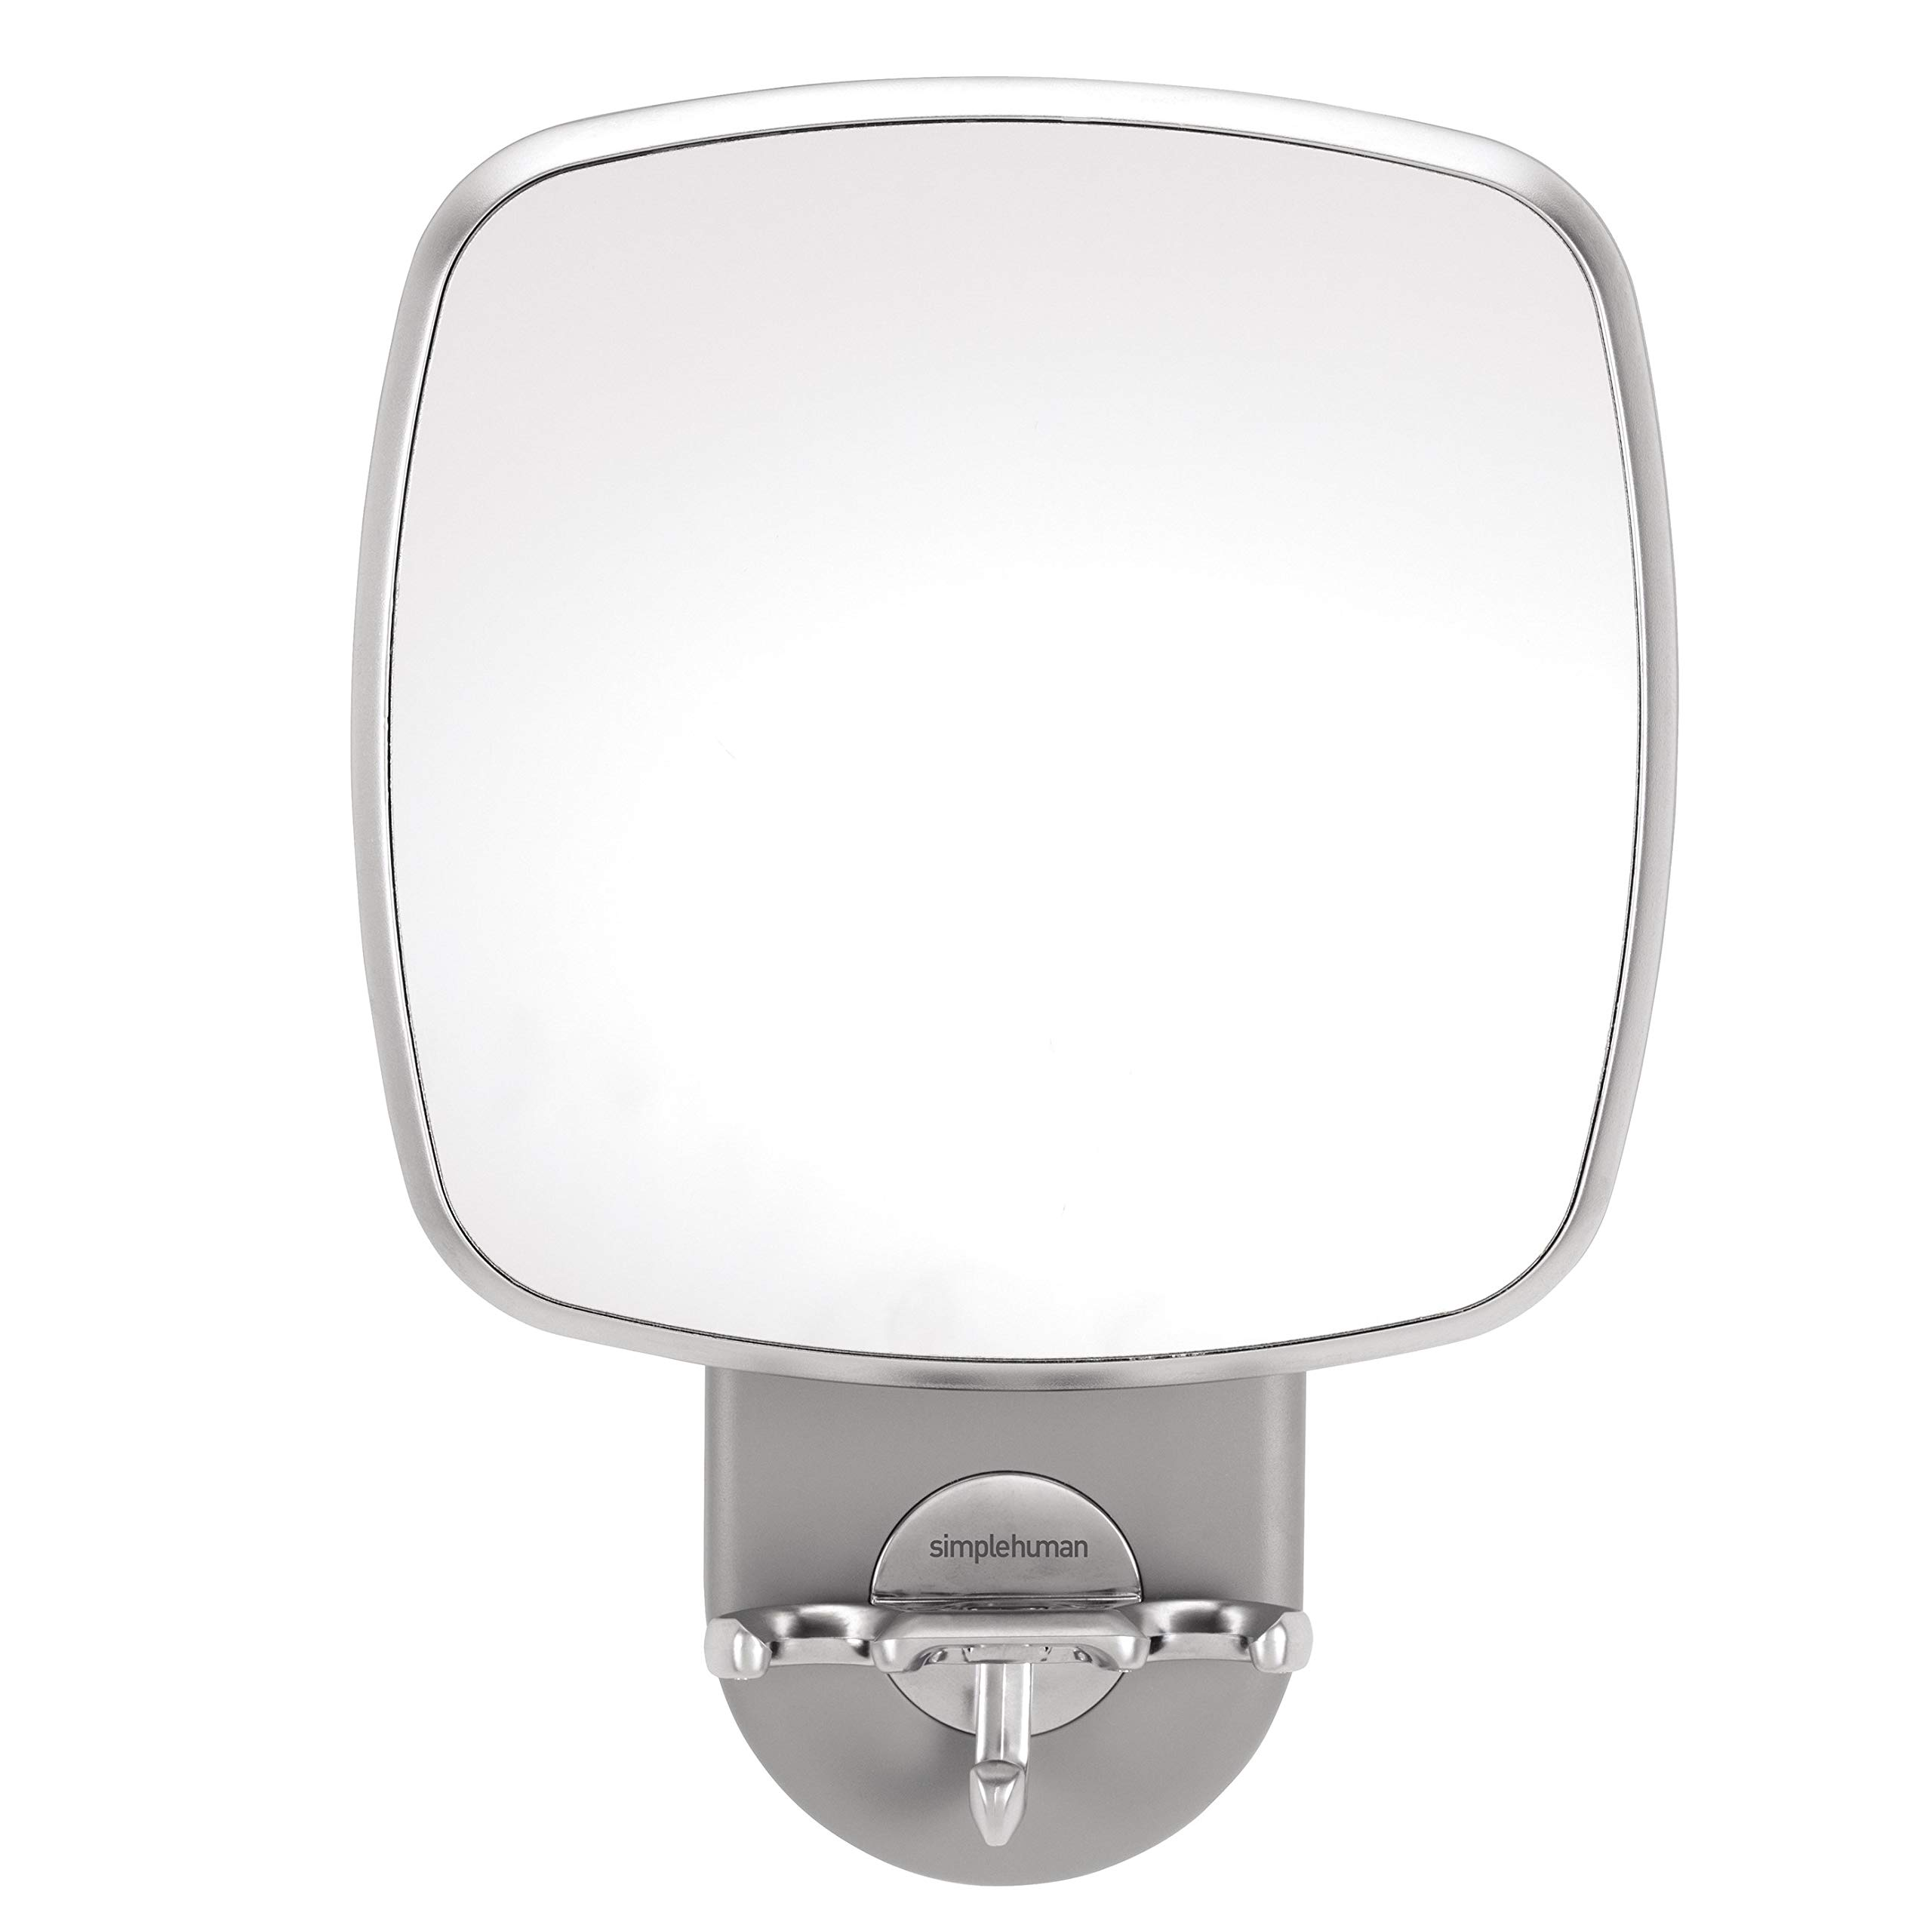 simplehuman Wall Mount Shower Mirror by simplehuman